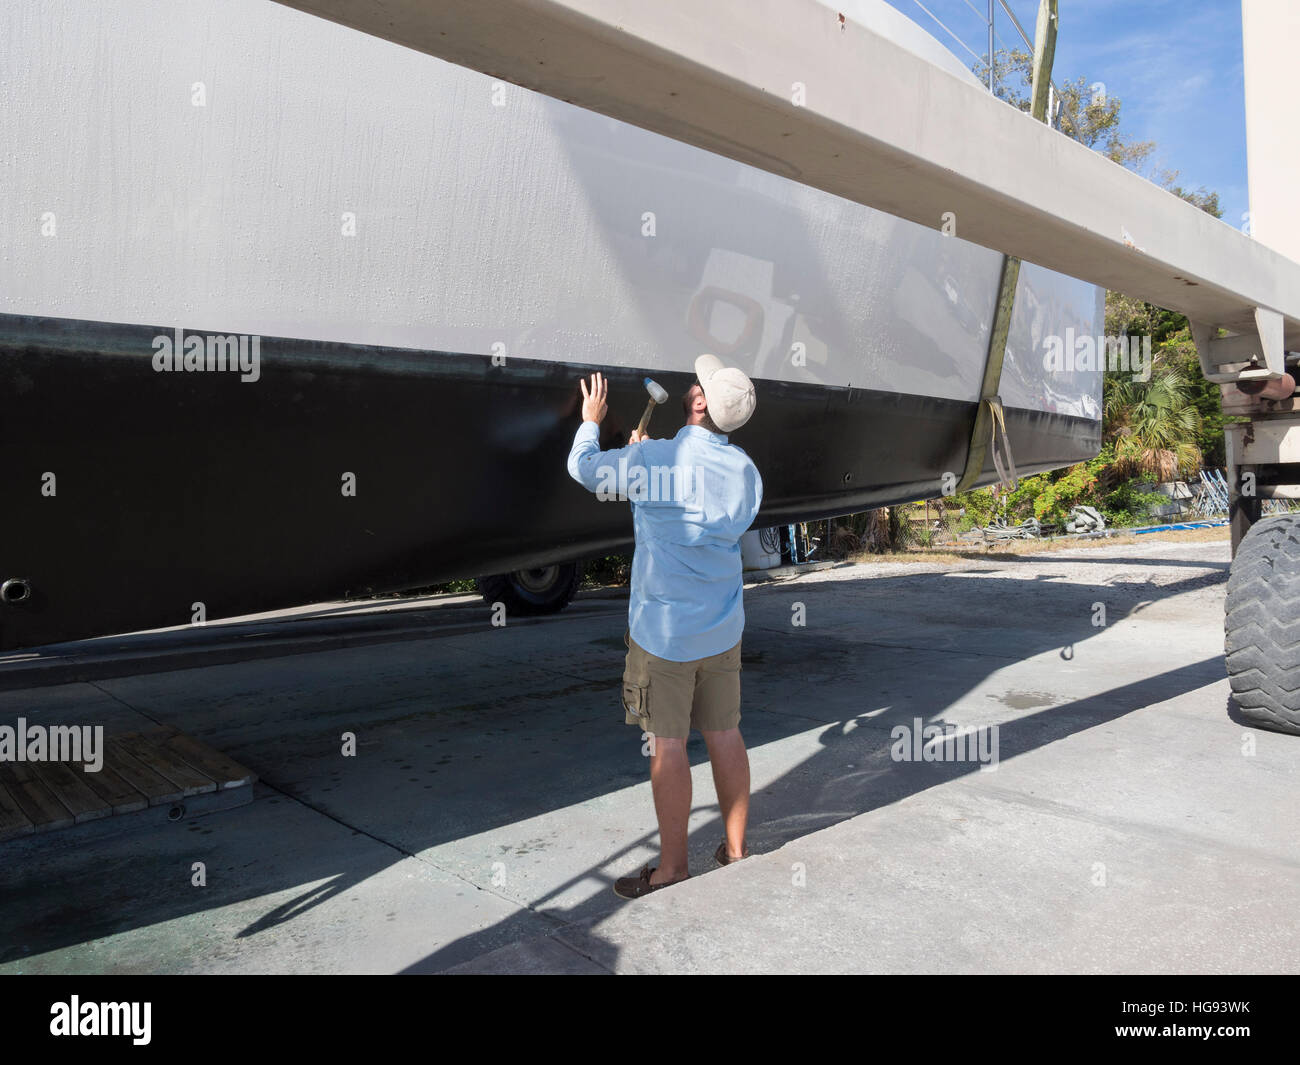 A surveyor checks the condition of the hull on a hauled out boat - Stock Image